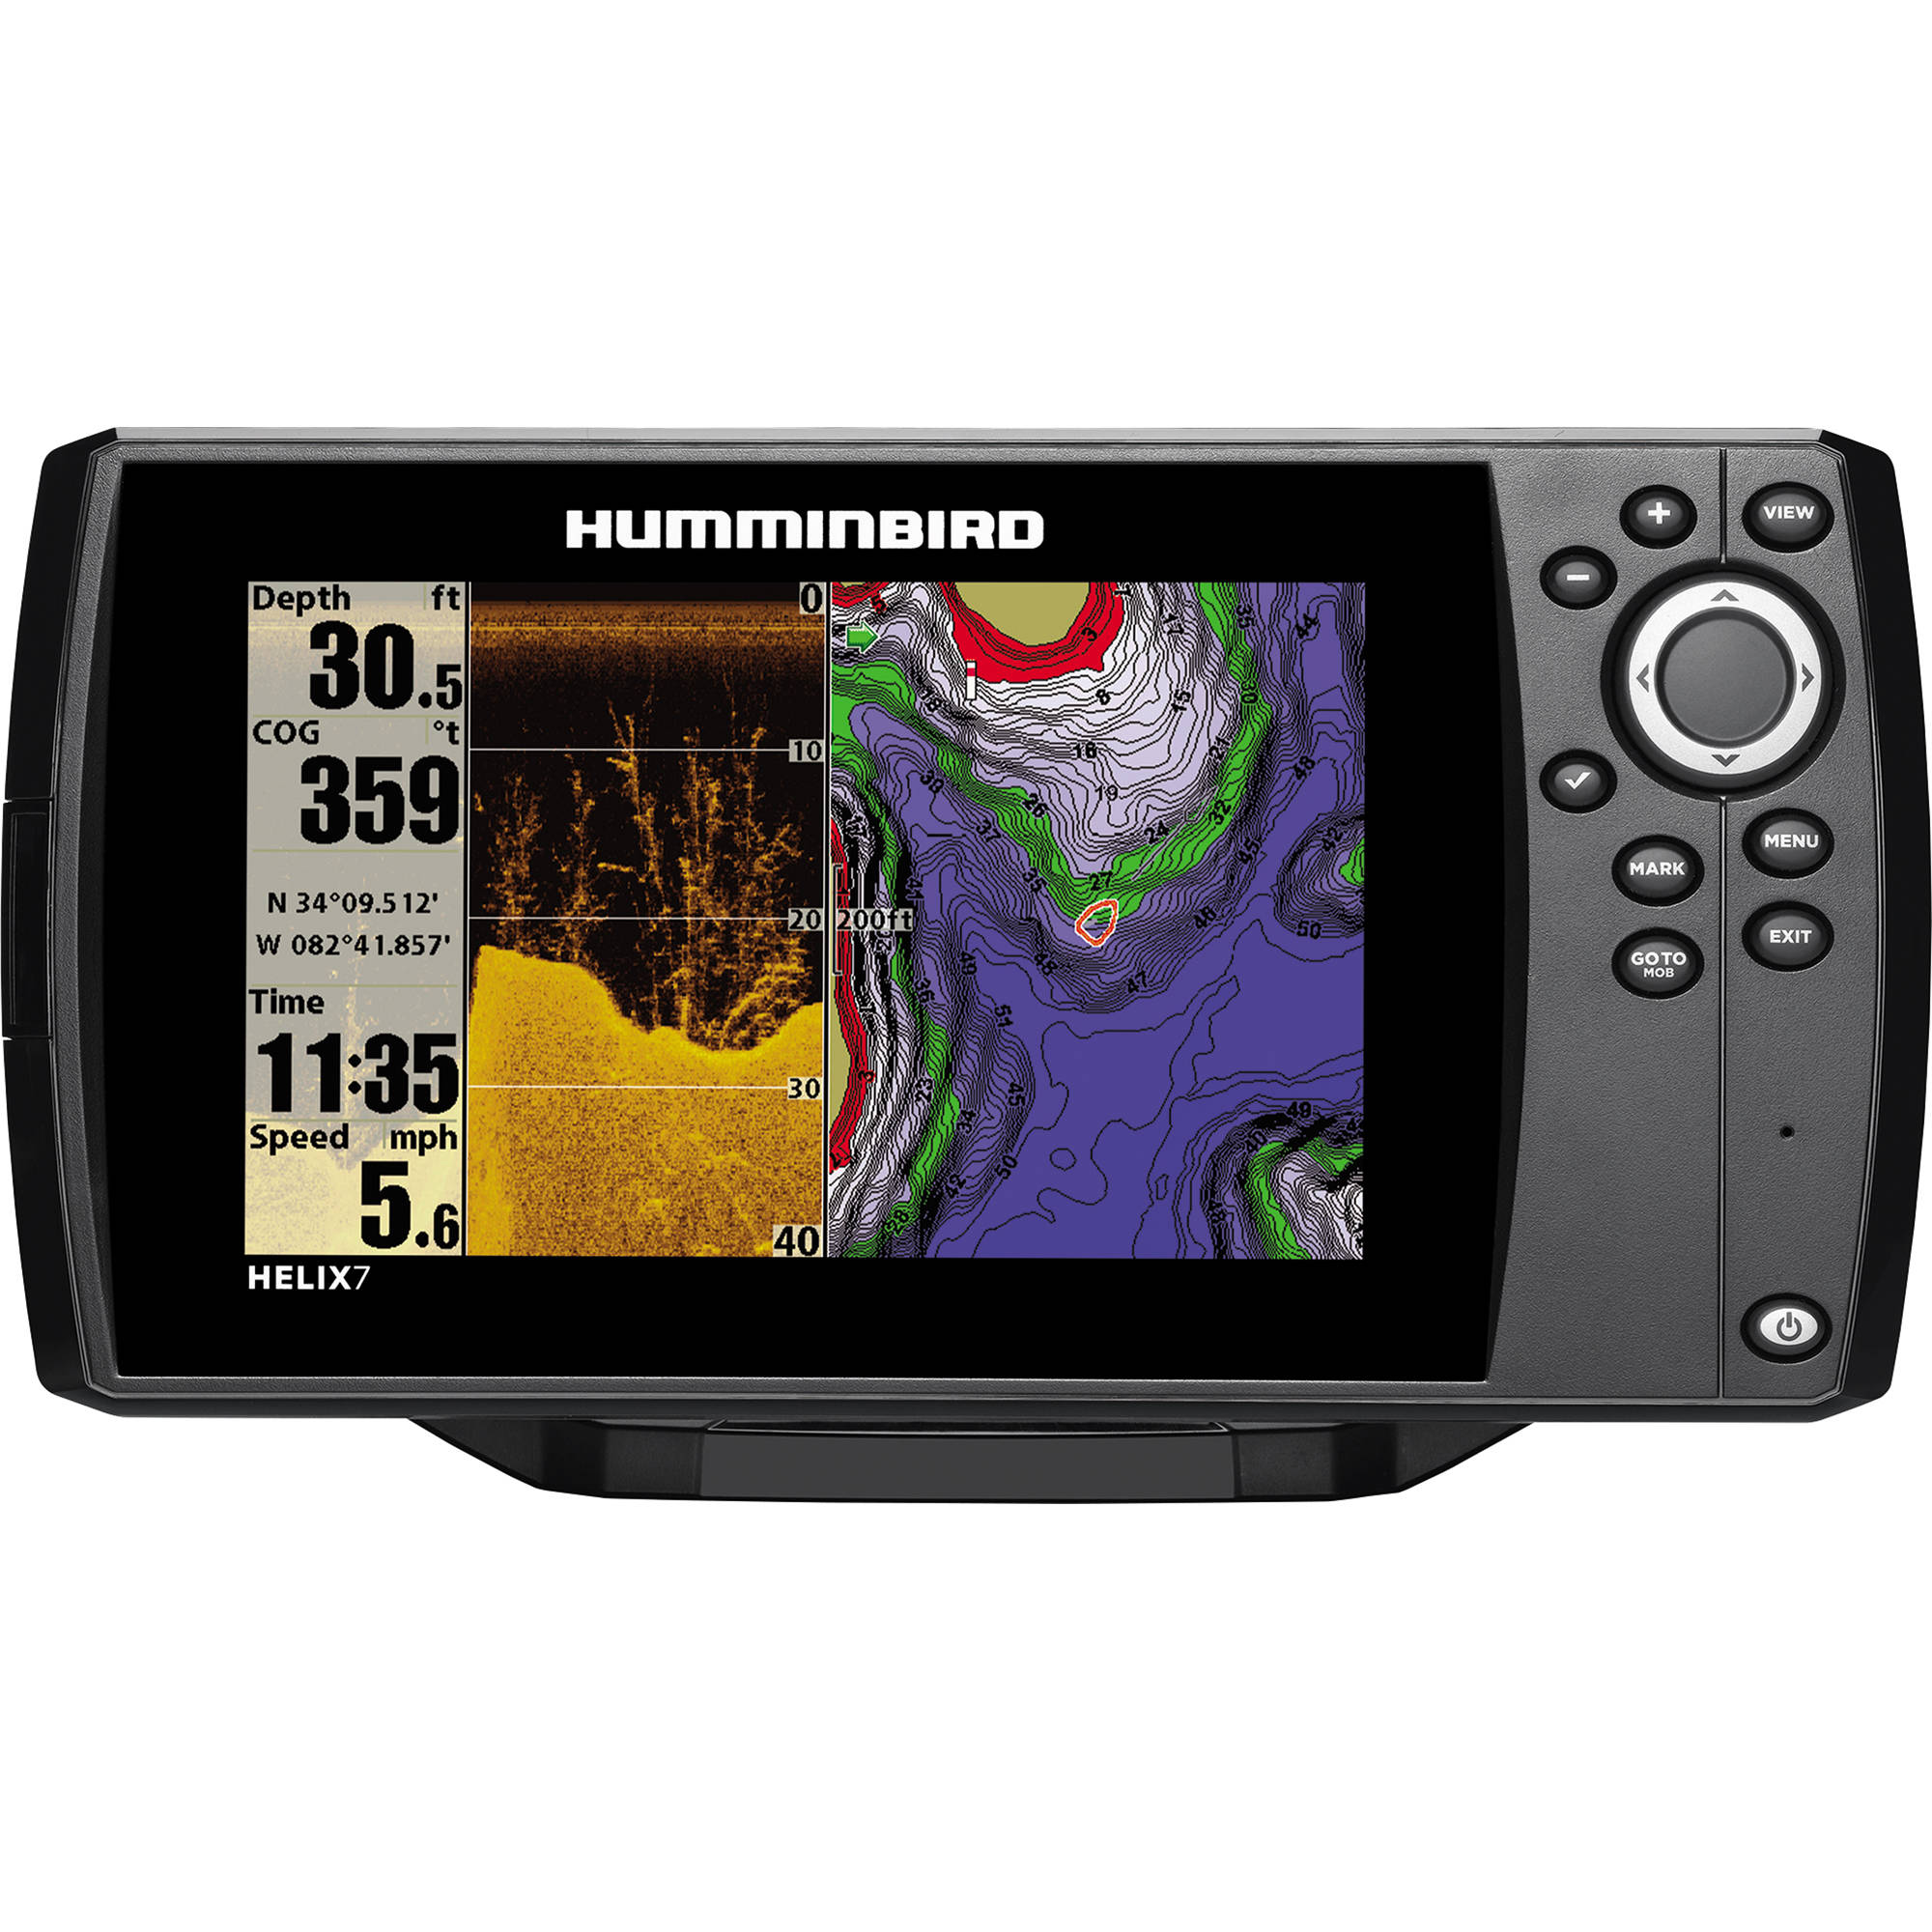 humminbird helix 7 di gps fishfinder 409830-1 b&h photo video, Fish Finder